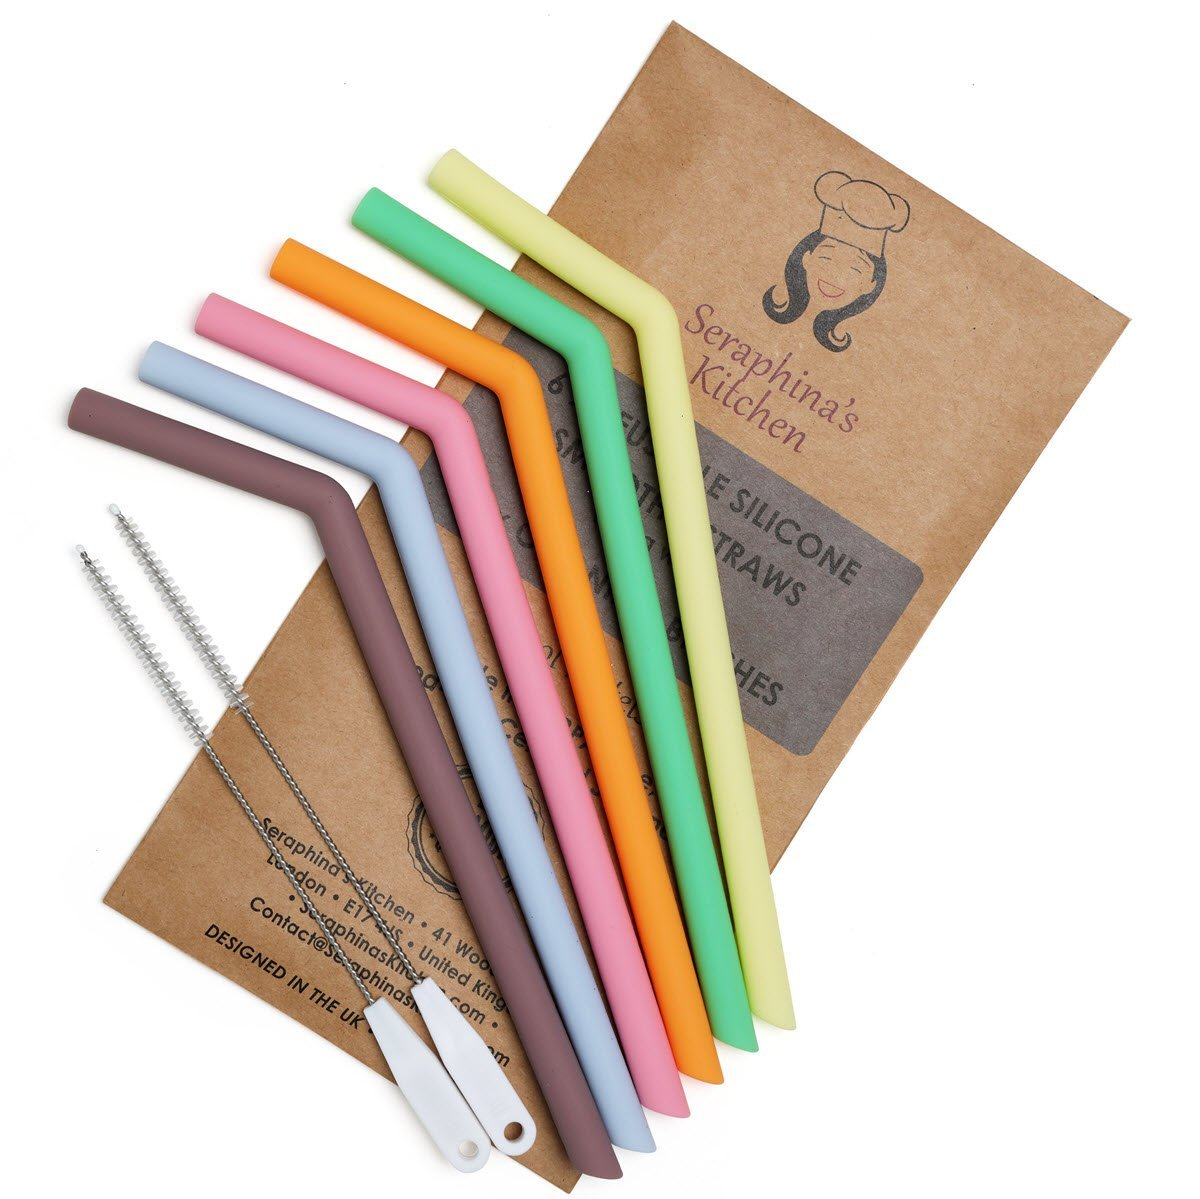 Reusable straws: Seraphina's Kitchen silicone straw set | Amazon